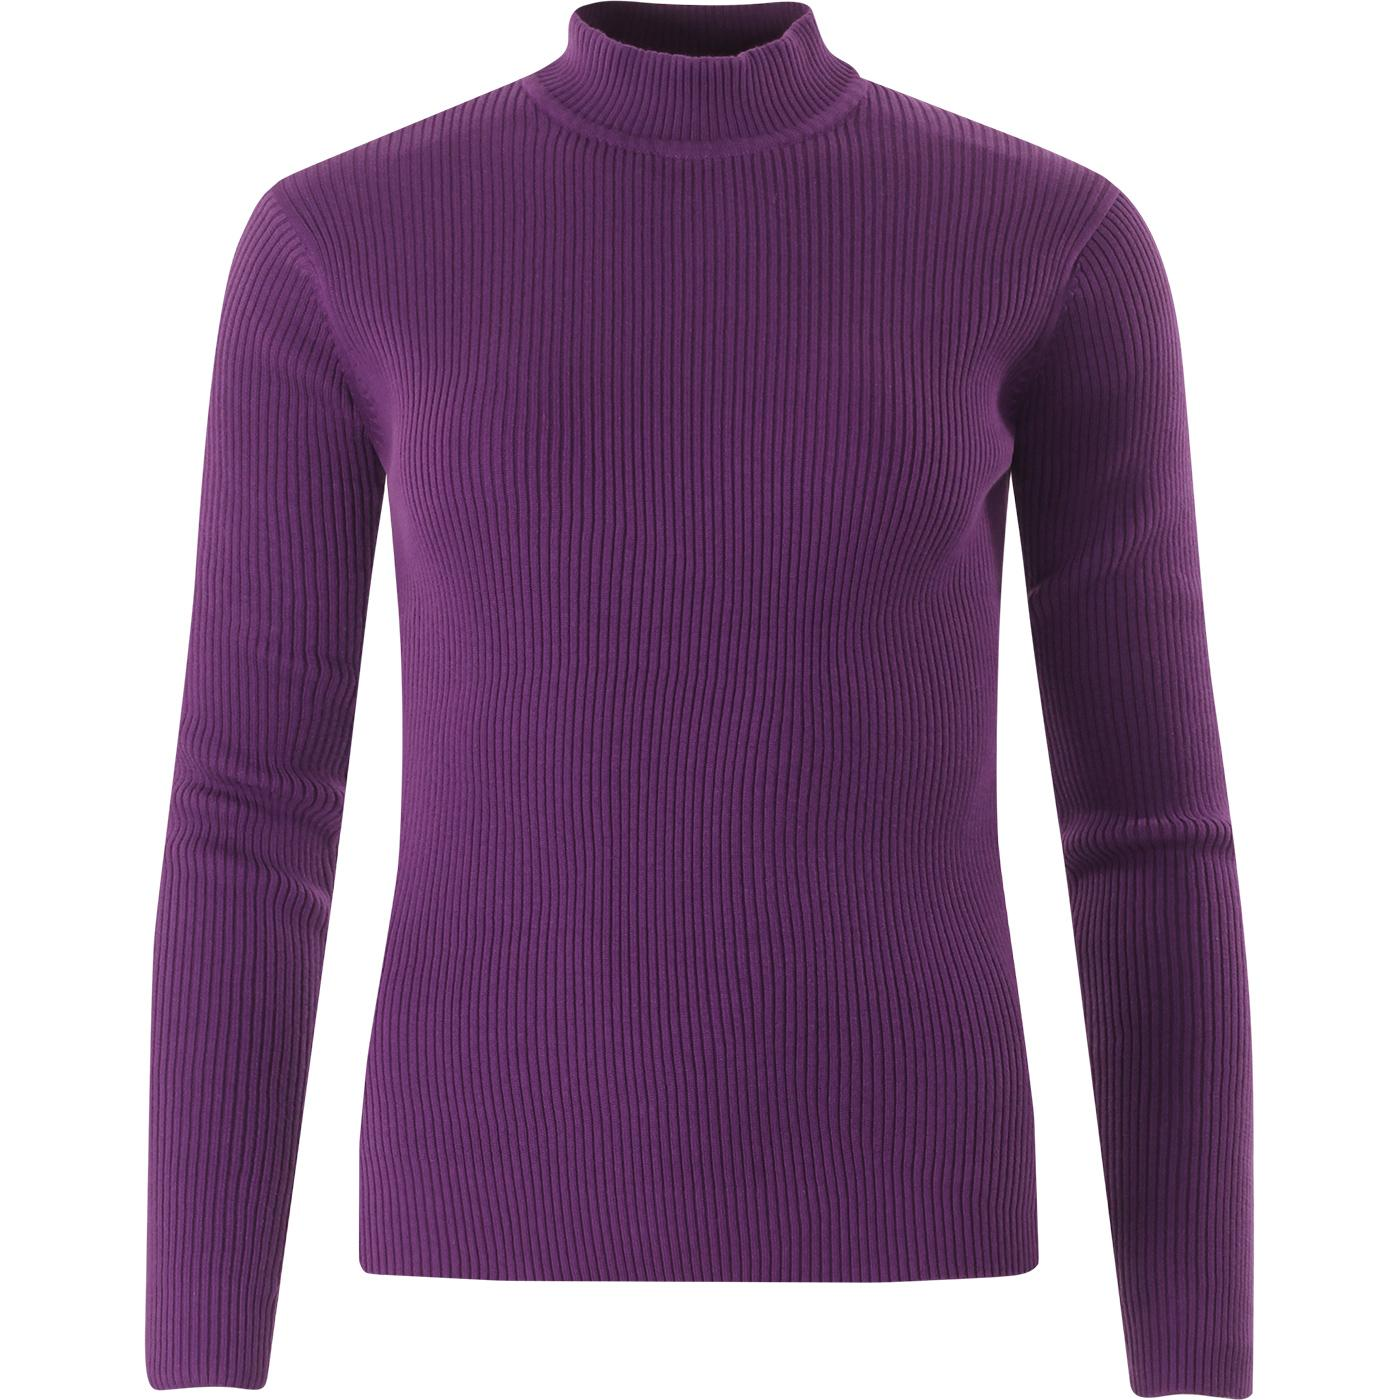 madcap england womens ribbed knit turtleneck long sleeve slim fit top imperial purple